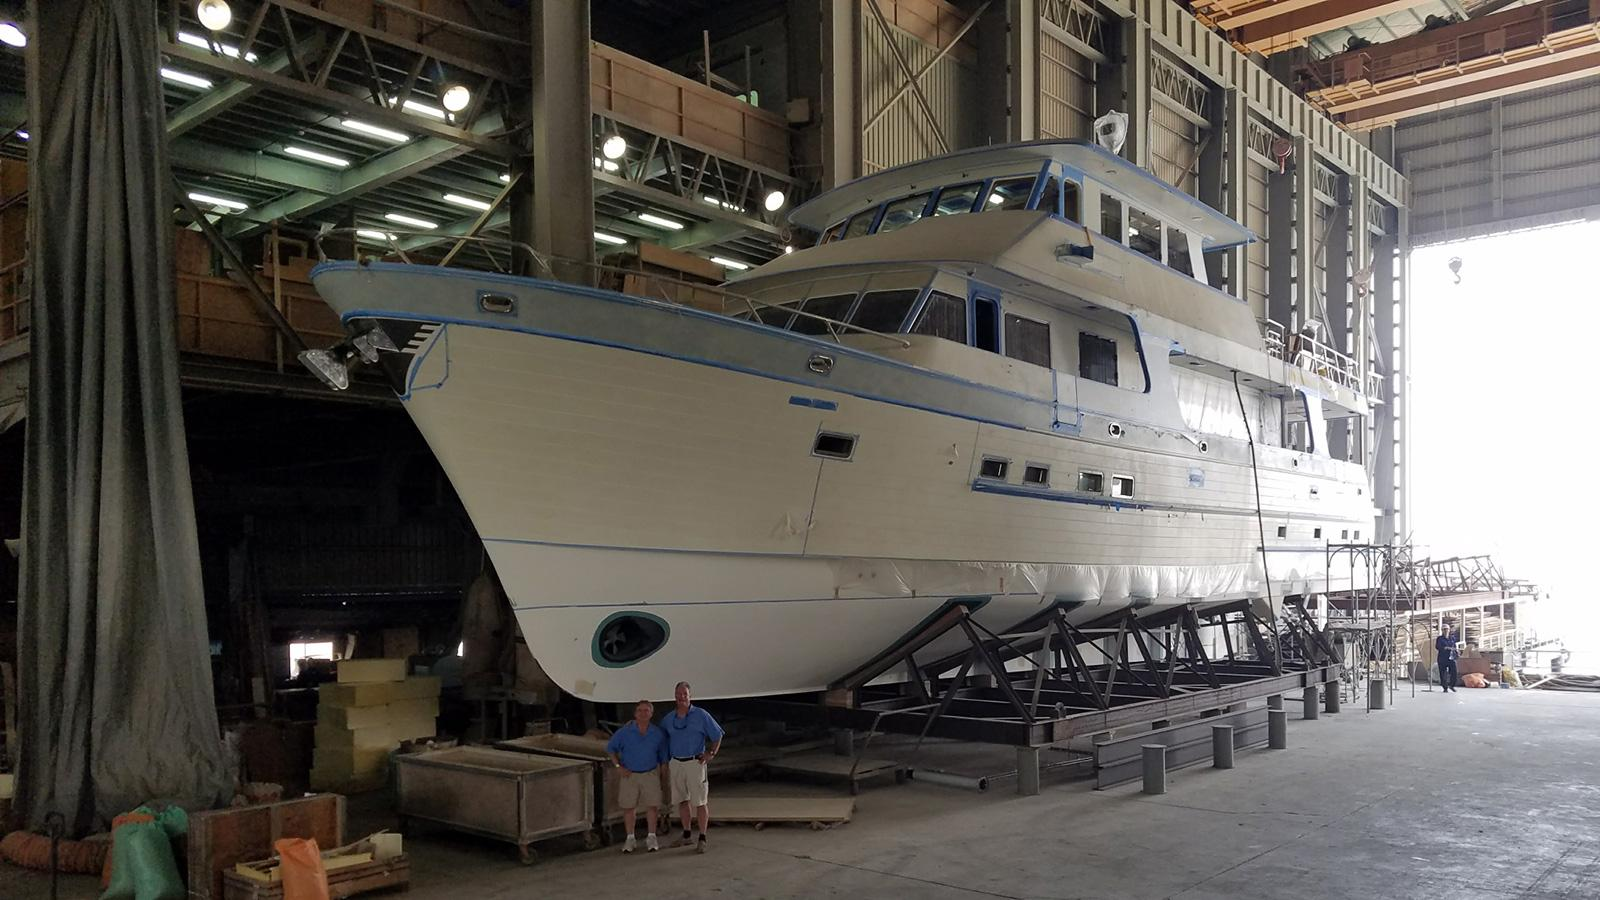 860 dbmy motoryacht outer reef yachts 2018 26m under construction